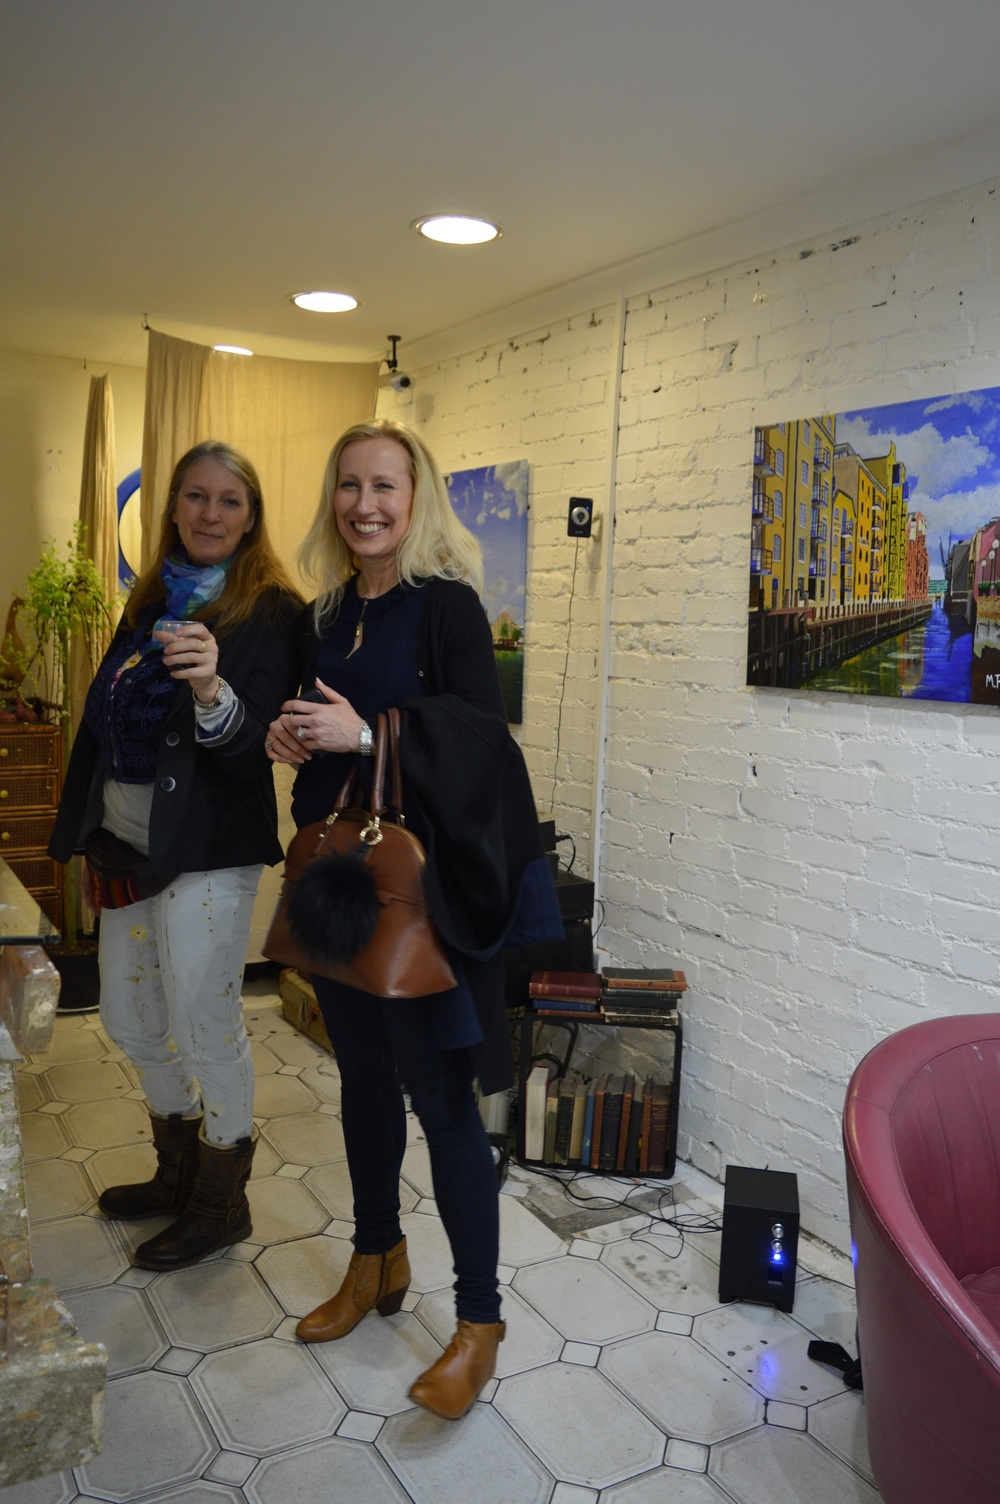 Guests of 504 Gallery | North London